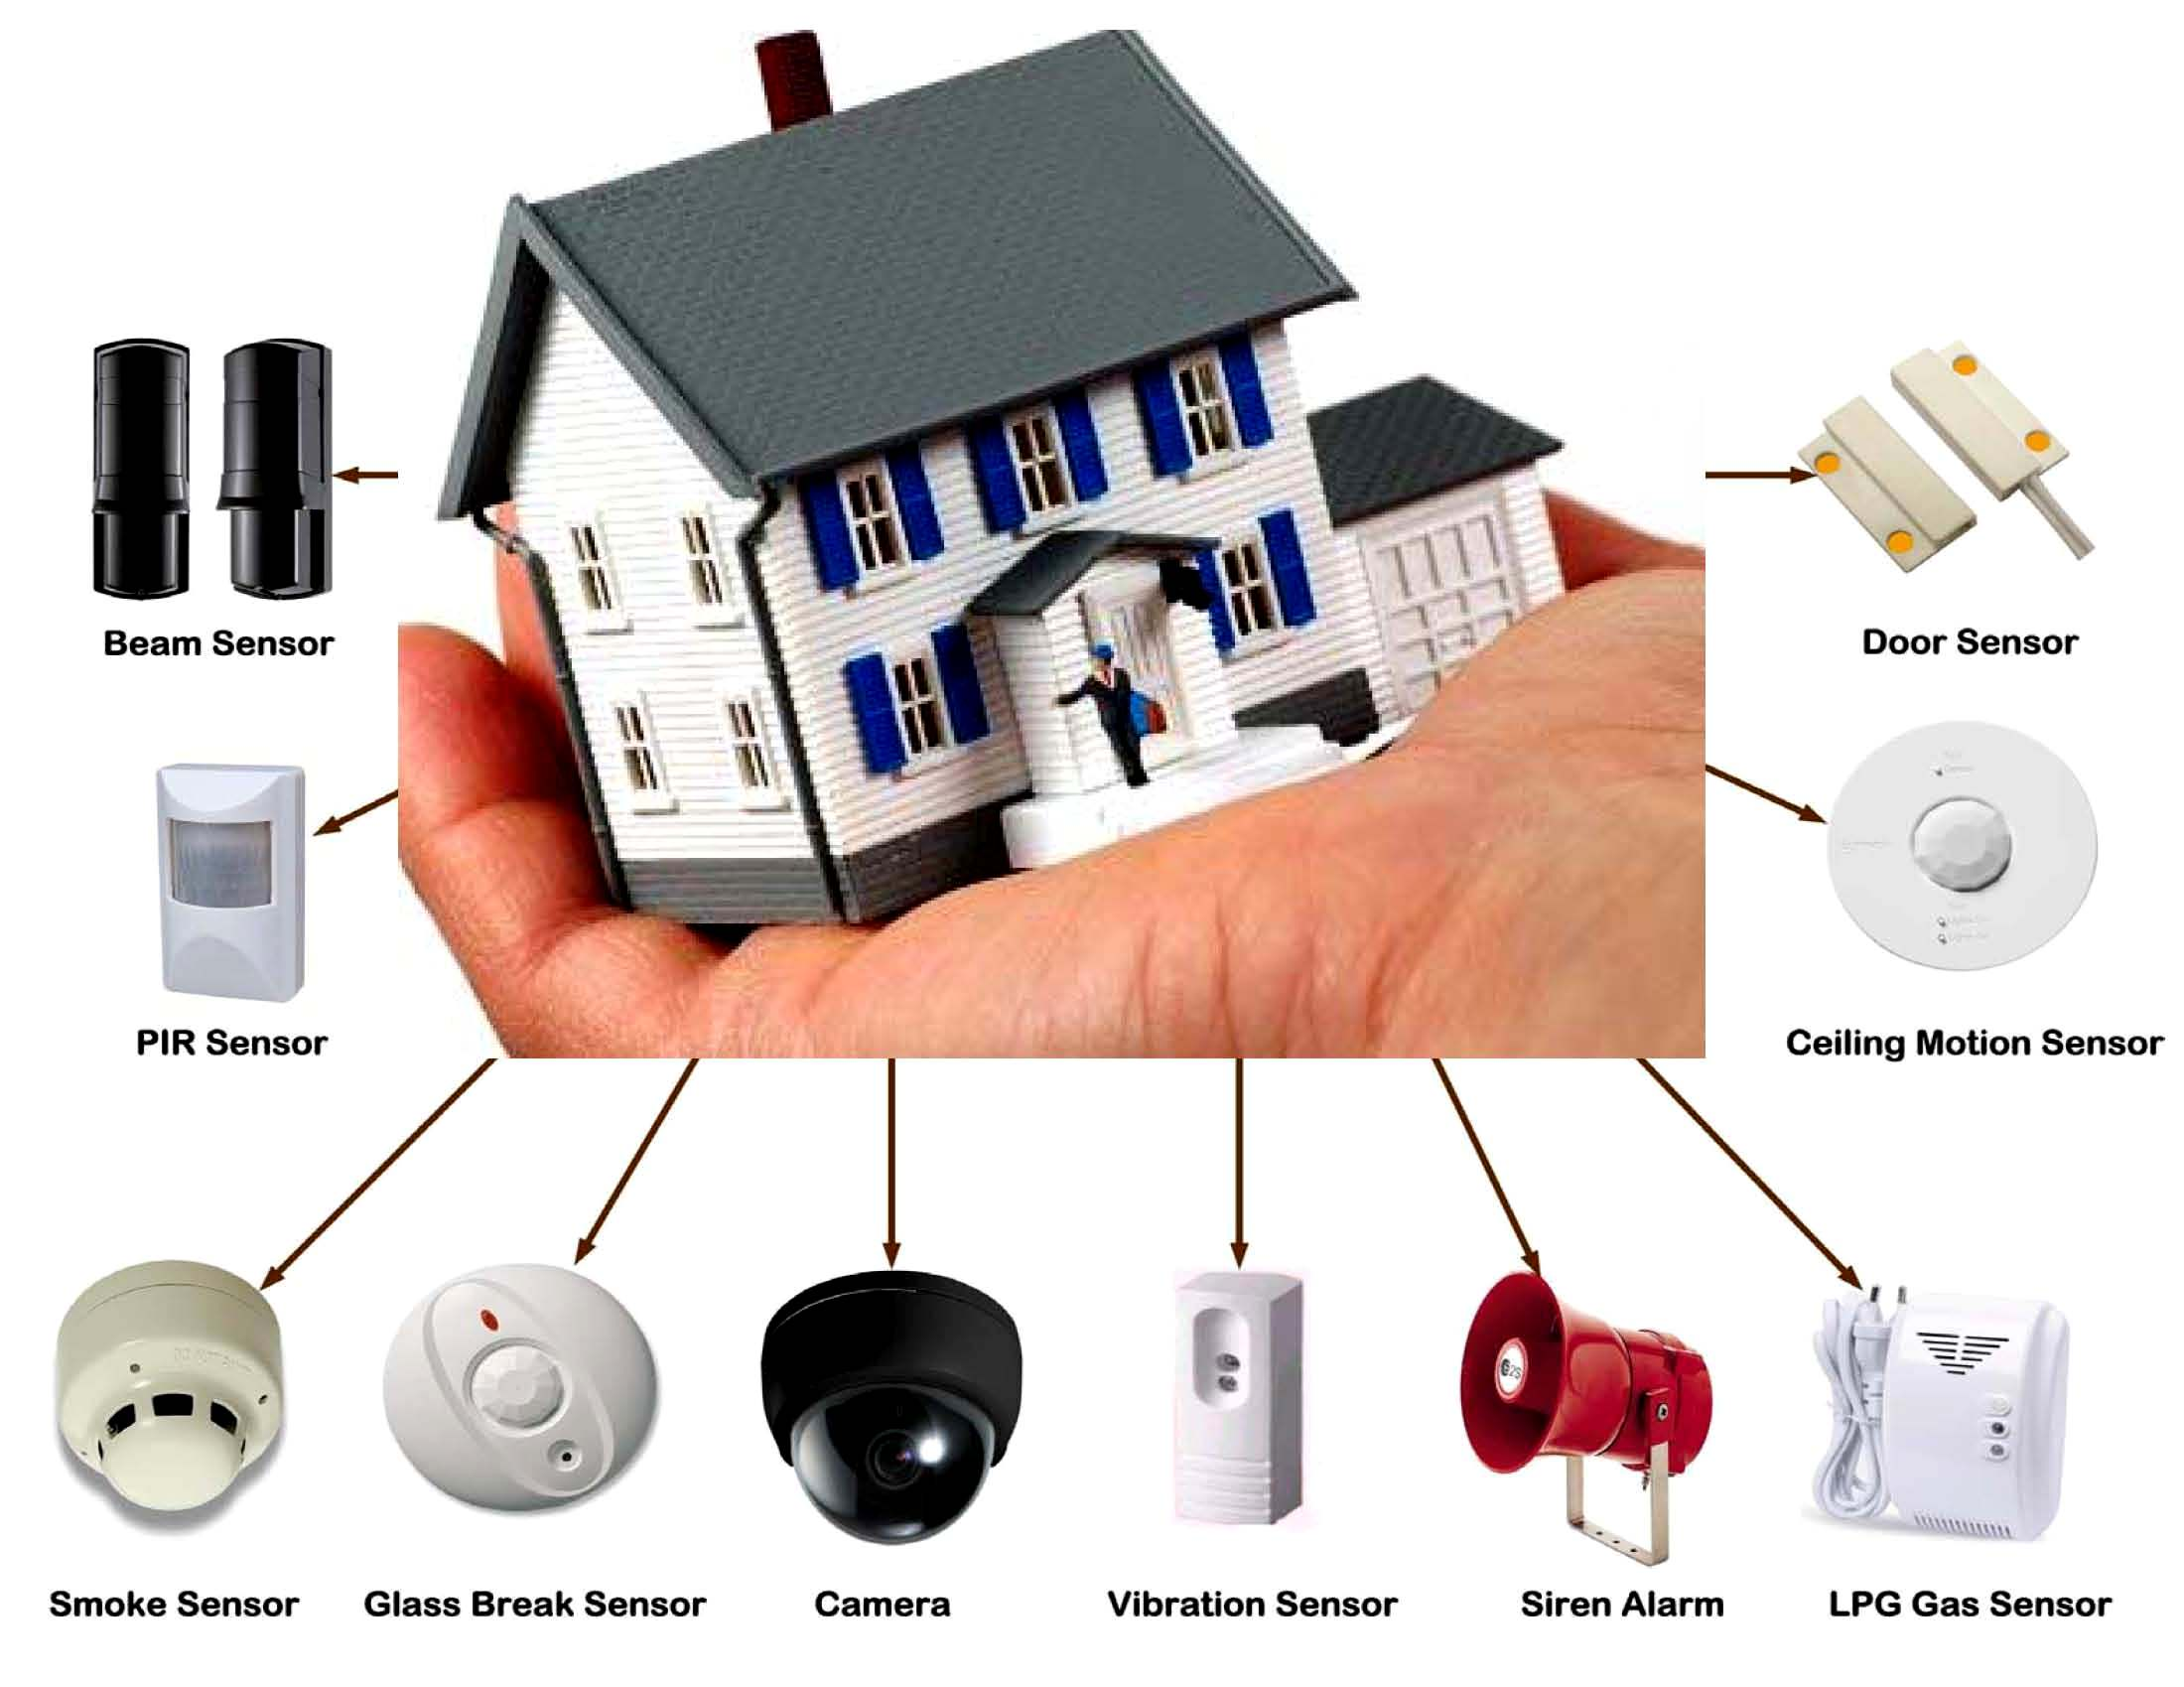 Security Systems For Home Using Door Knock Vibration Alarm Pir Sensor Based Circuit Diagram